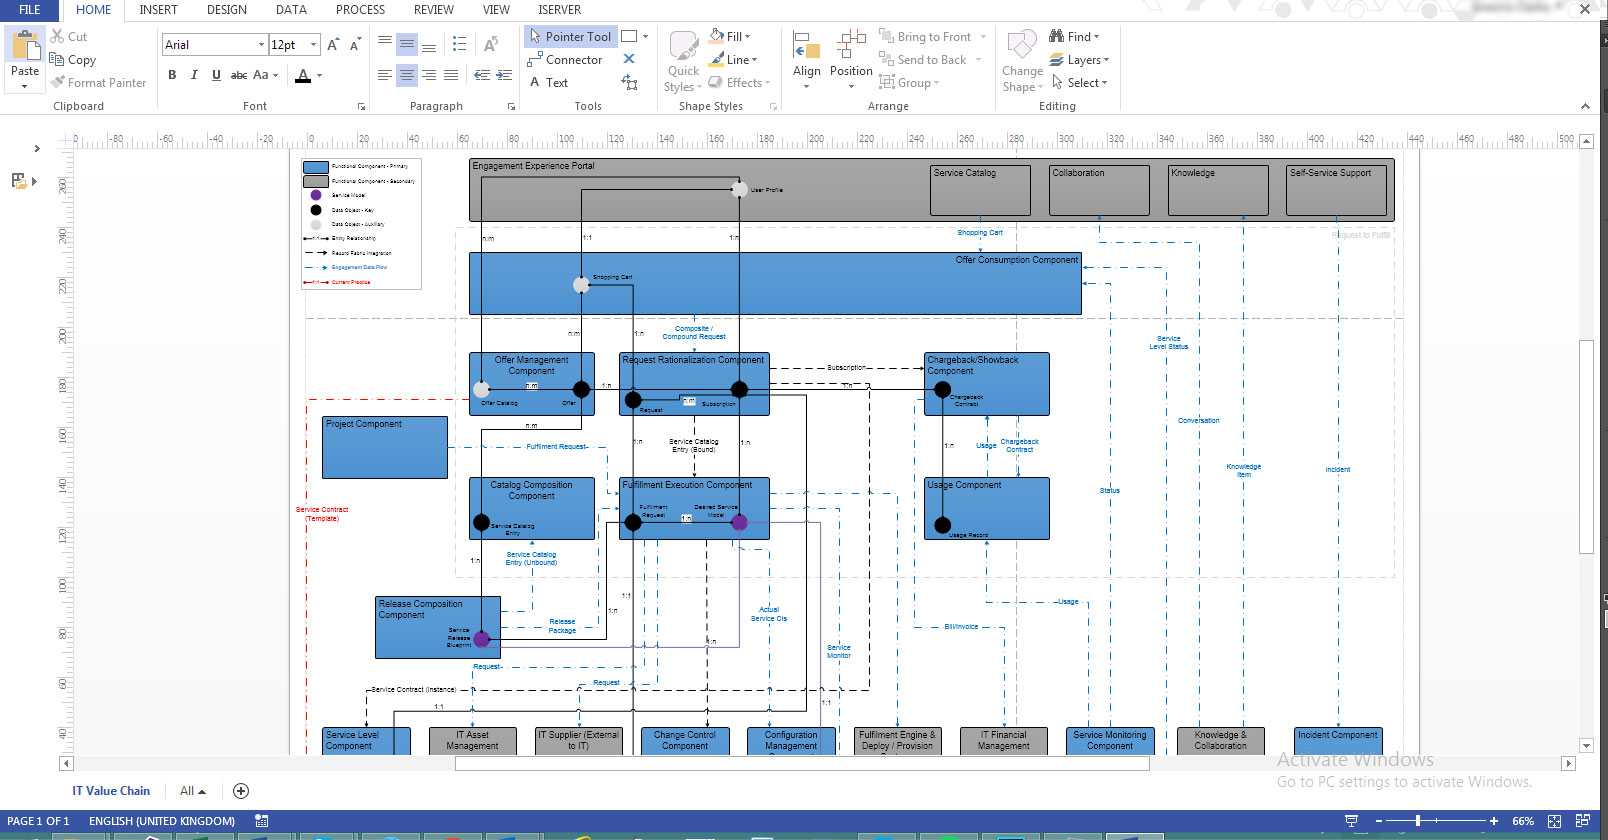 visio template for software architecture - visio stencils software architecture 28 images visio